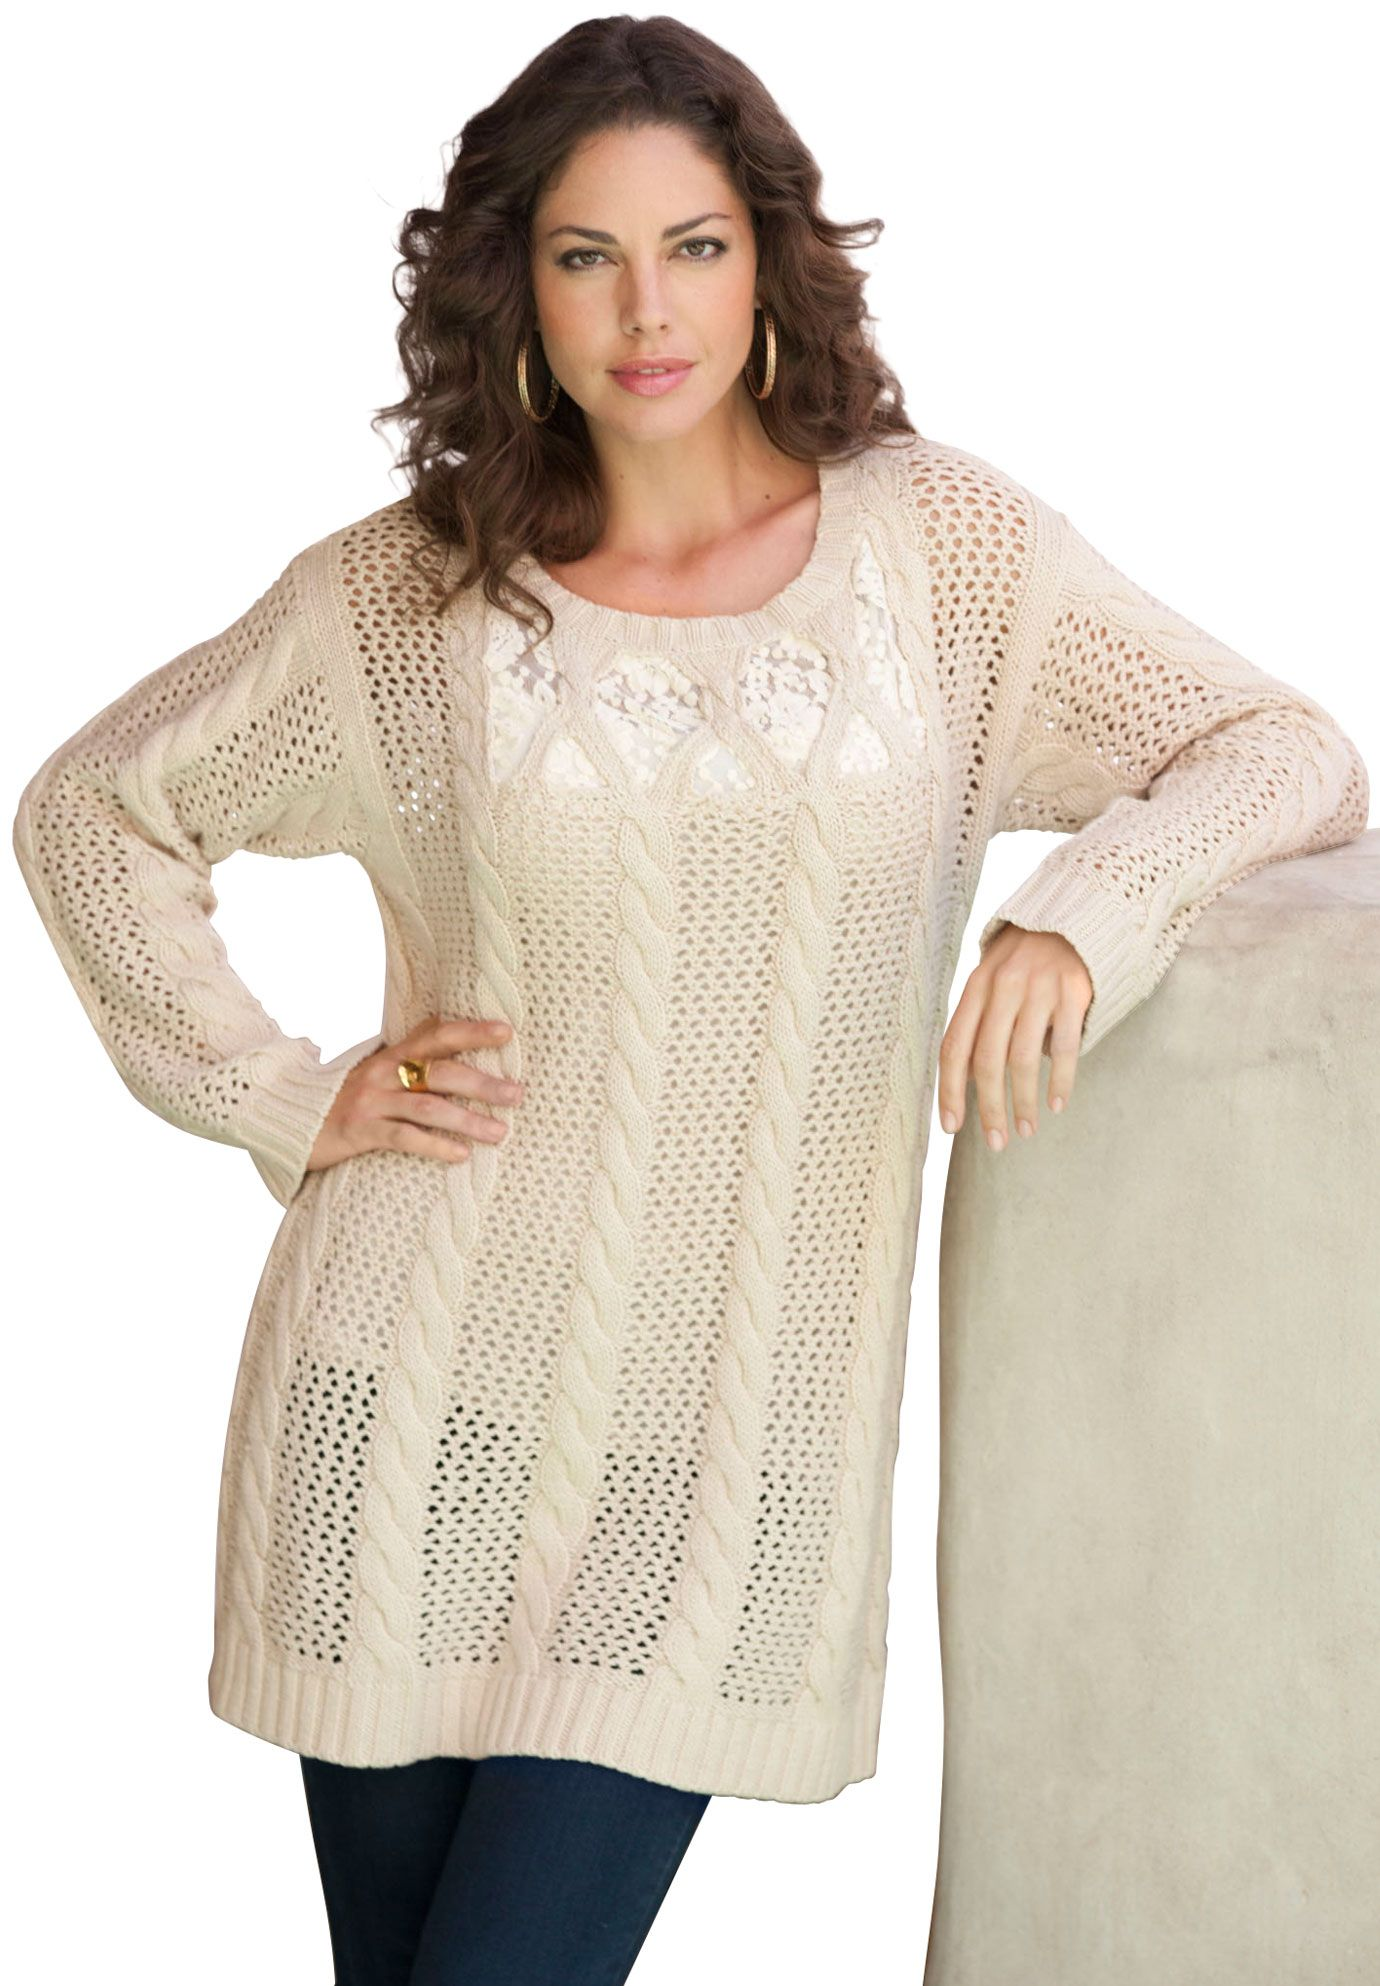 Evening women size tops sweaters lace plus up